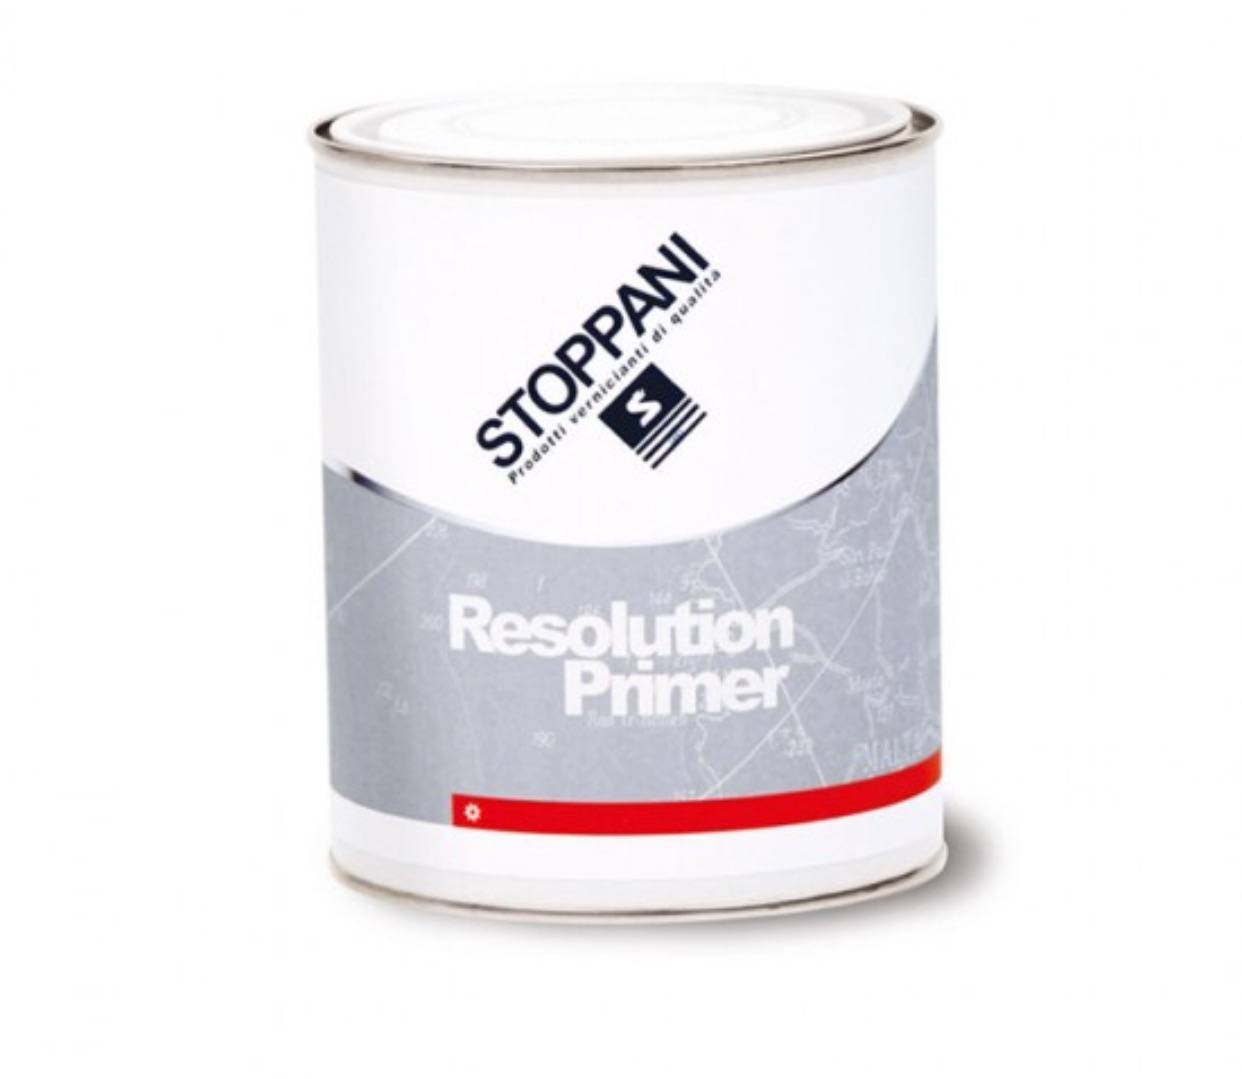 stoppani resolution primer - resolution_primer